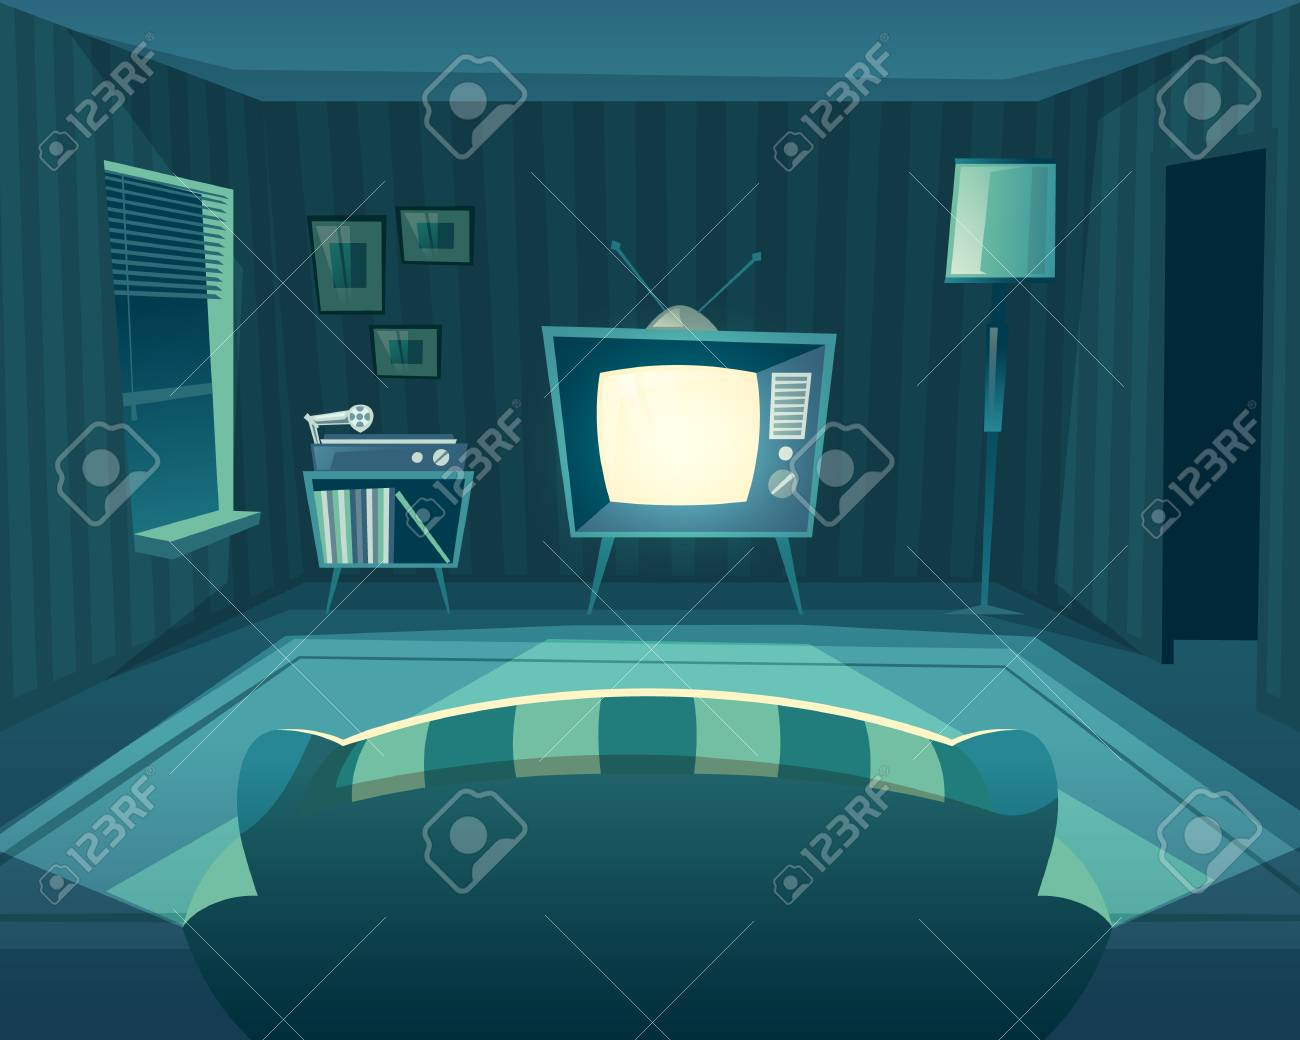 Cartoon Living Room At Night Front View From Sofa To Tv Set Stock Photo Picture And Royalty Free Image Image 111633072